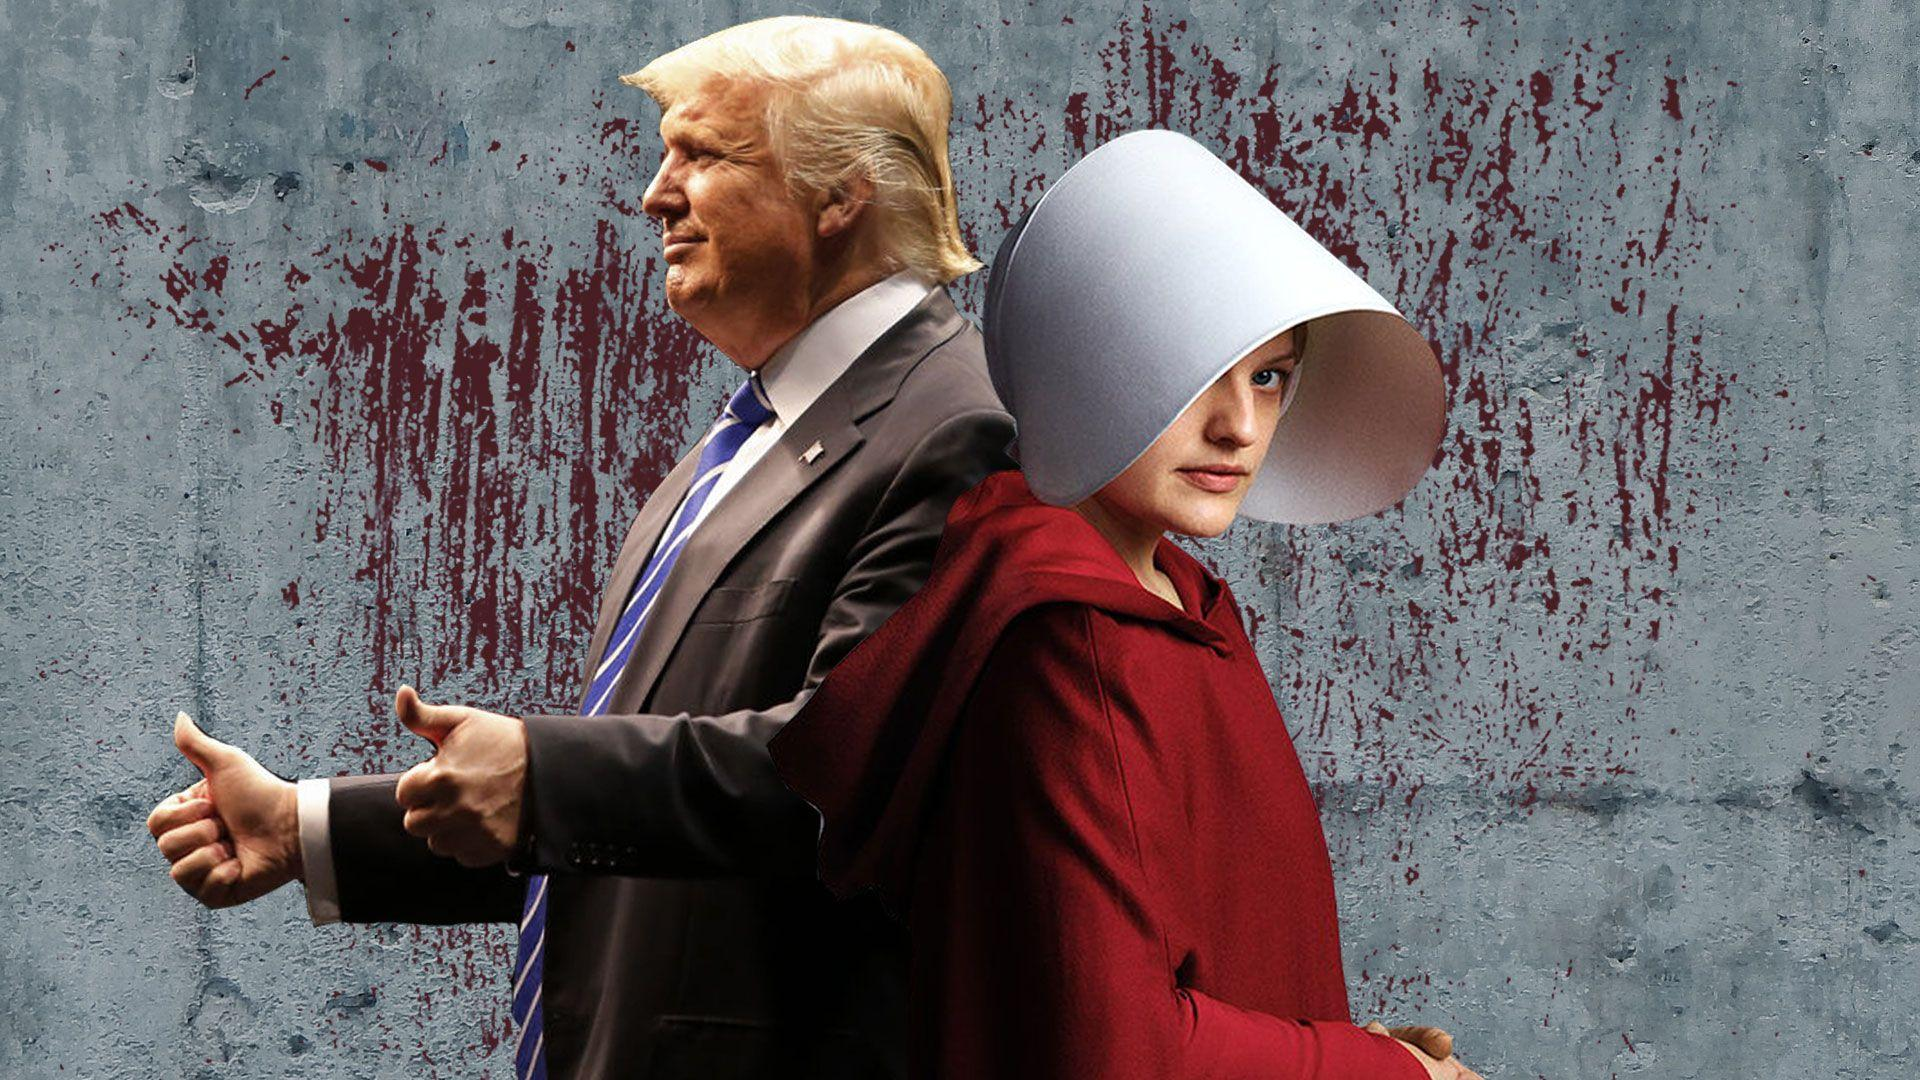 Trump's The Handmaid's Tale from Funny Or Die, Charles Muzard,